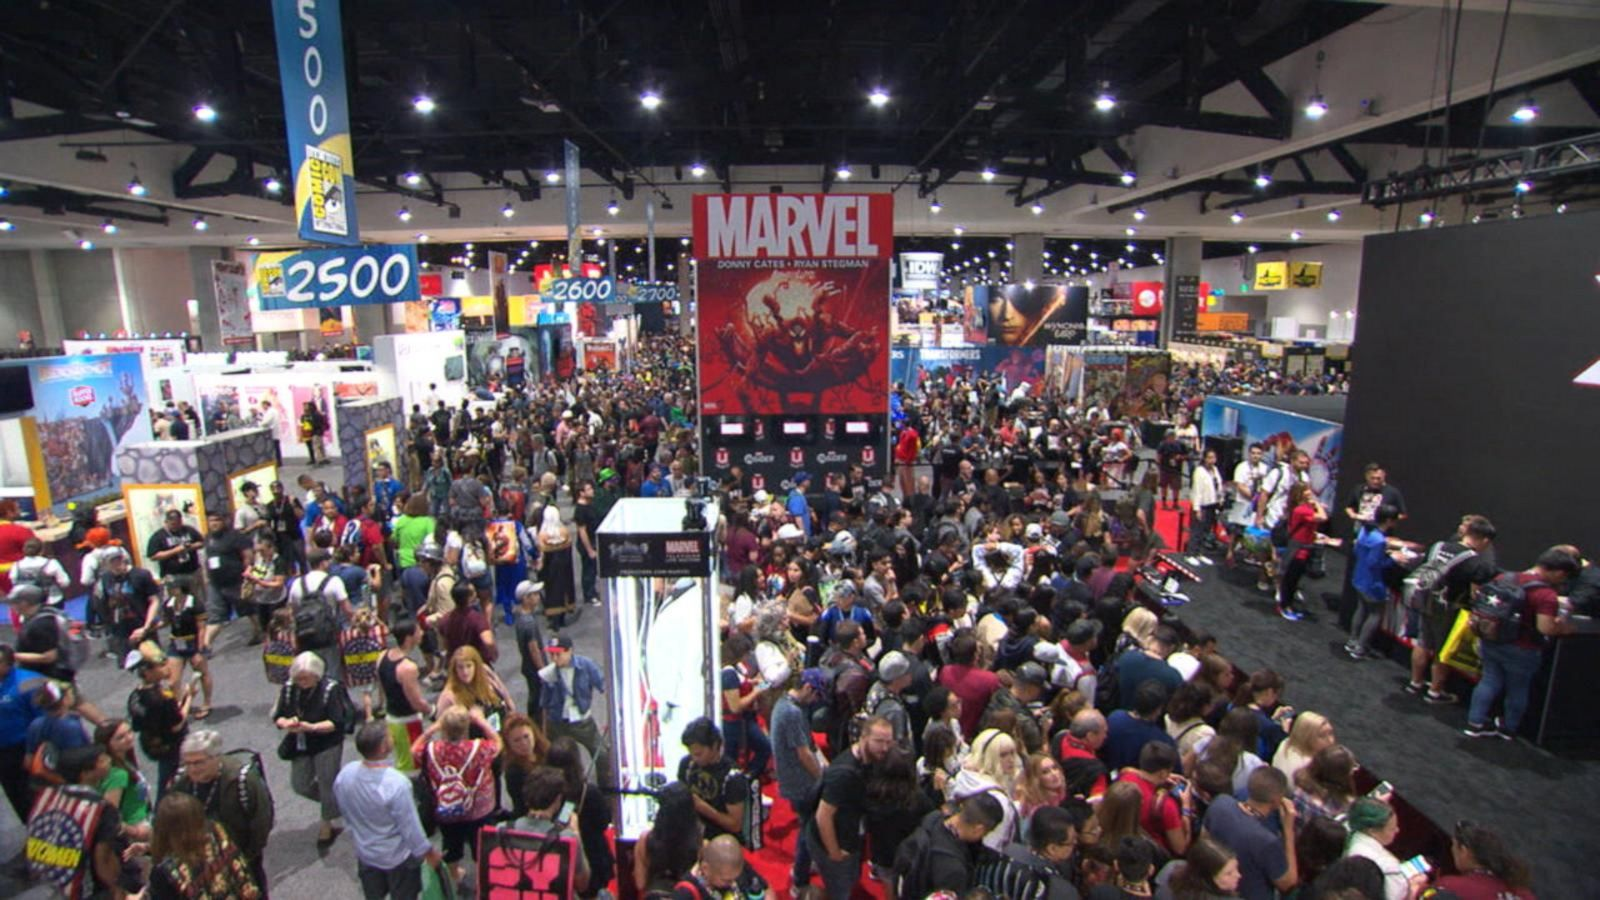 Marvel announces new superhero movies